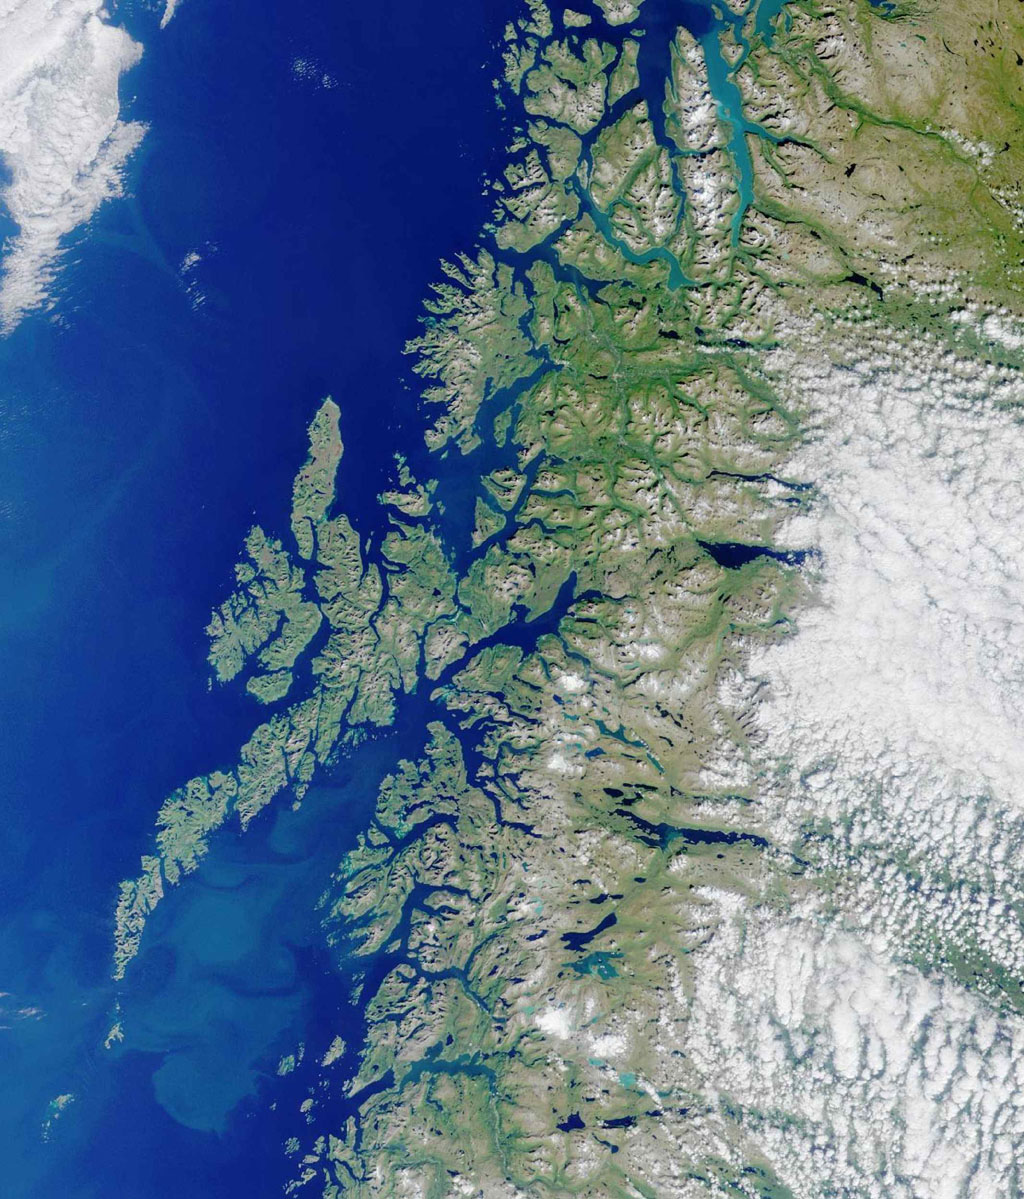 Lofoten Islands, Norway. Norway is deeply indented by fjords, rises precipitously to high plateaus, and is united with the ocean by numerous islands. This image from NASA's Terra satellite is MISR Mystery Image Quiz #2.